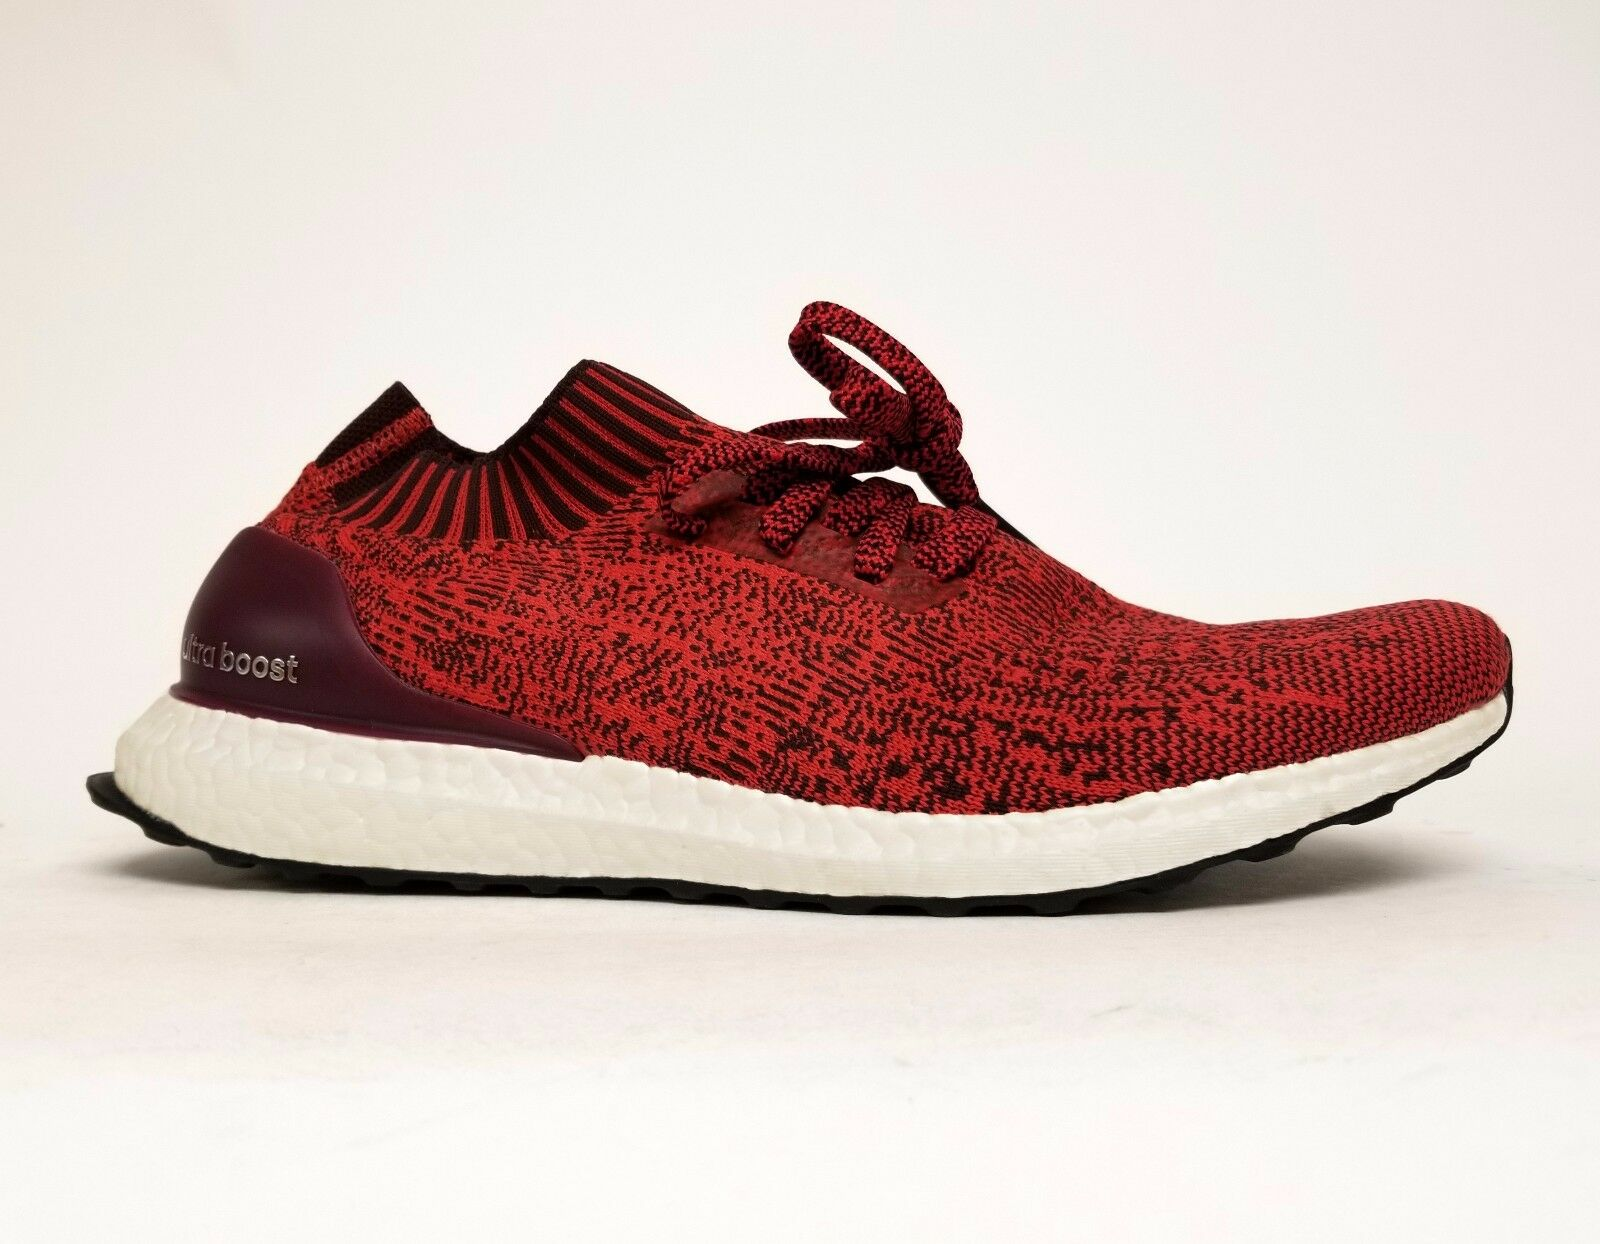 Adidas Shoes Men's UltraBOOST UNCAGED Running Shoes Adidas Dark Burgundy BY2554 b 5afd32